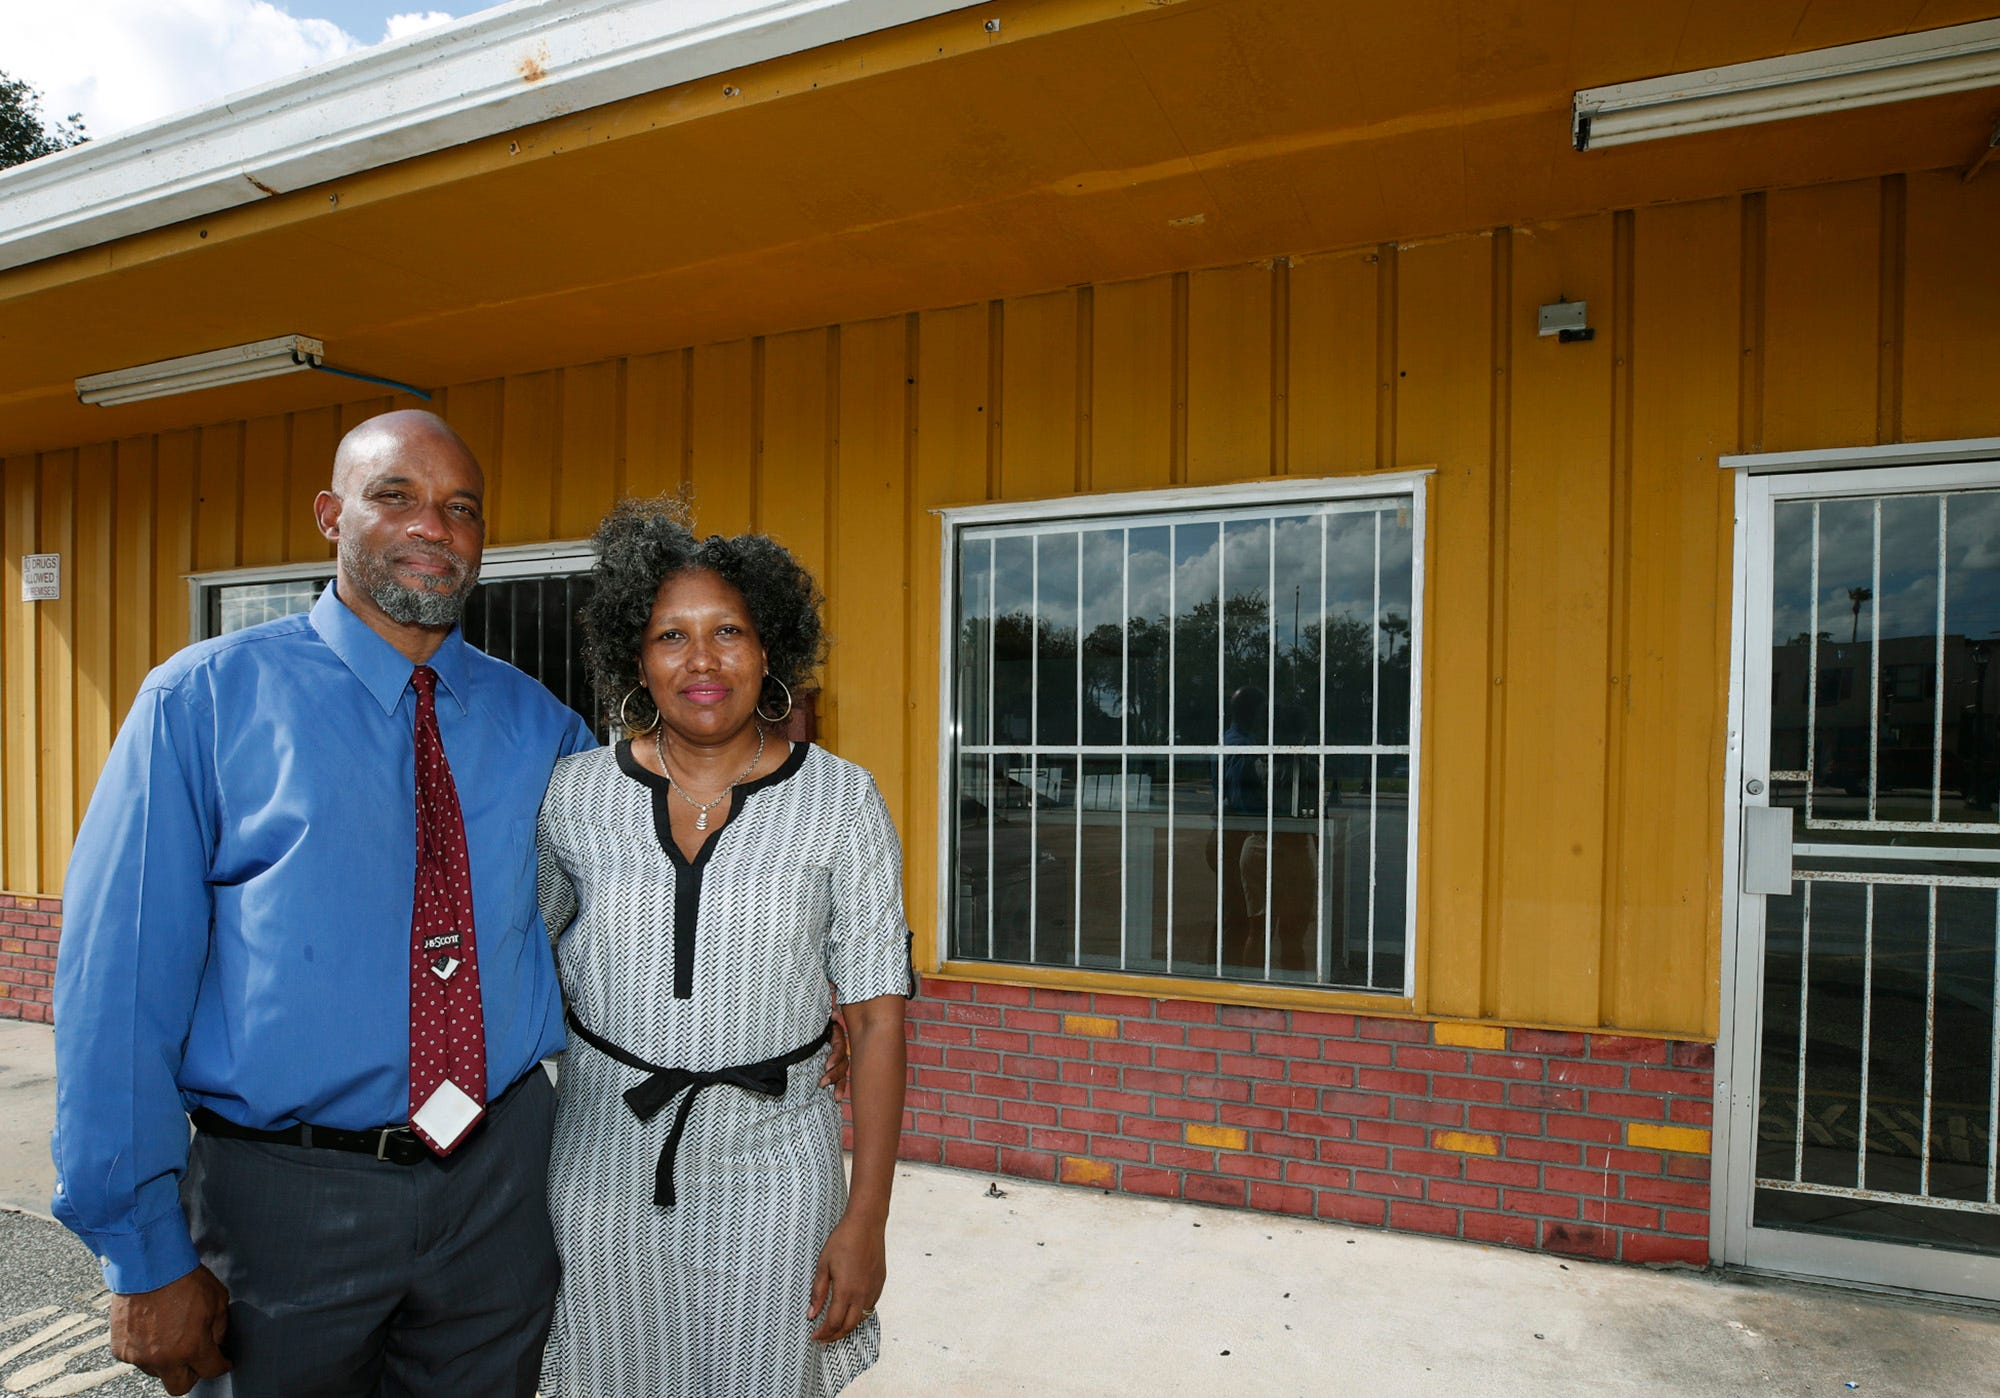 David Lucas and his wife Claudette are shown in front of their new restaurant, A Golden Taste of Jamaican Food & Treats, on Mary McLeod Bethune Boulevard in Daytona Beach.